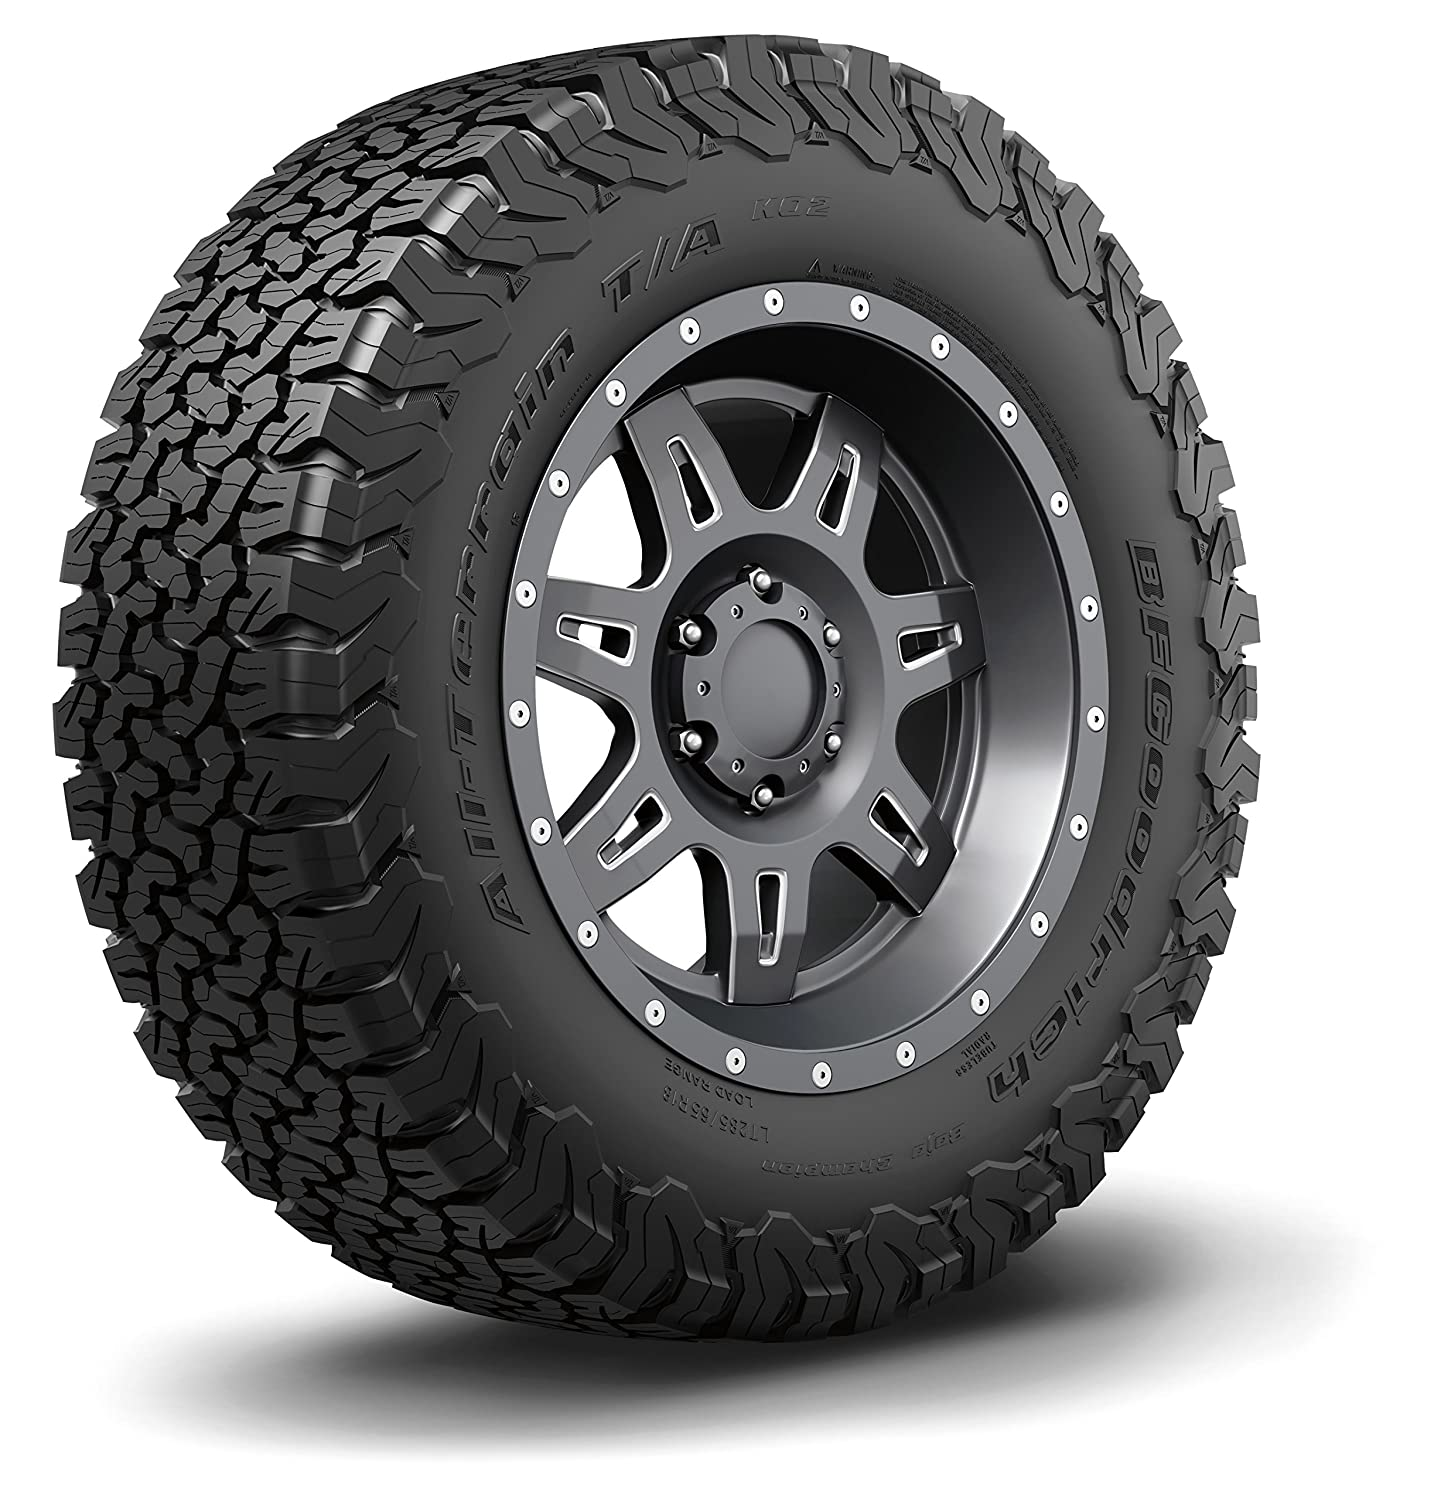 Amazon BFGoodrich All Terrain T A KO2 Radial Tire 285 75R16